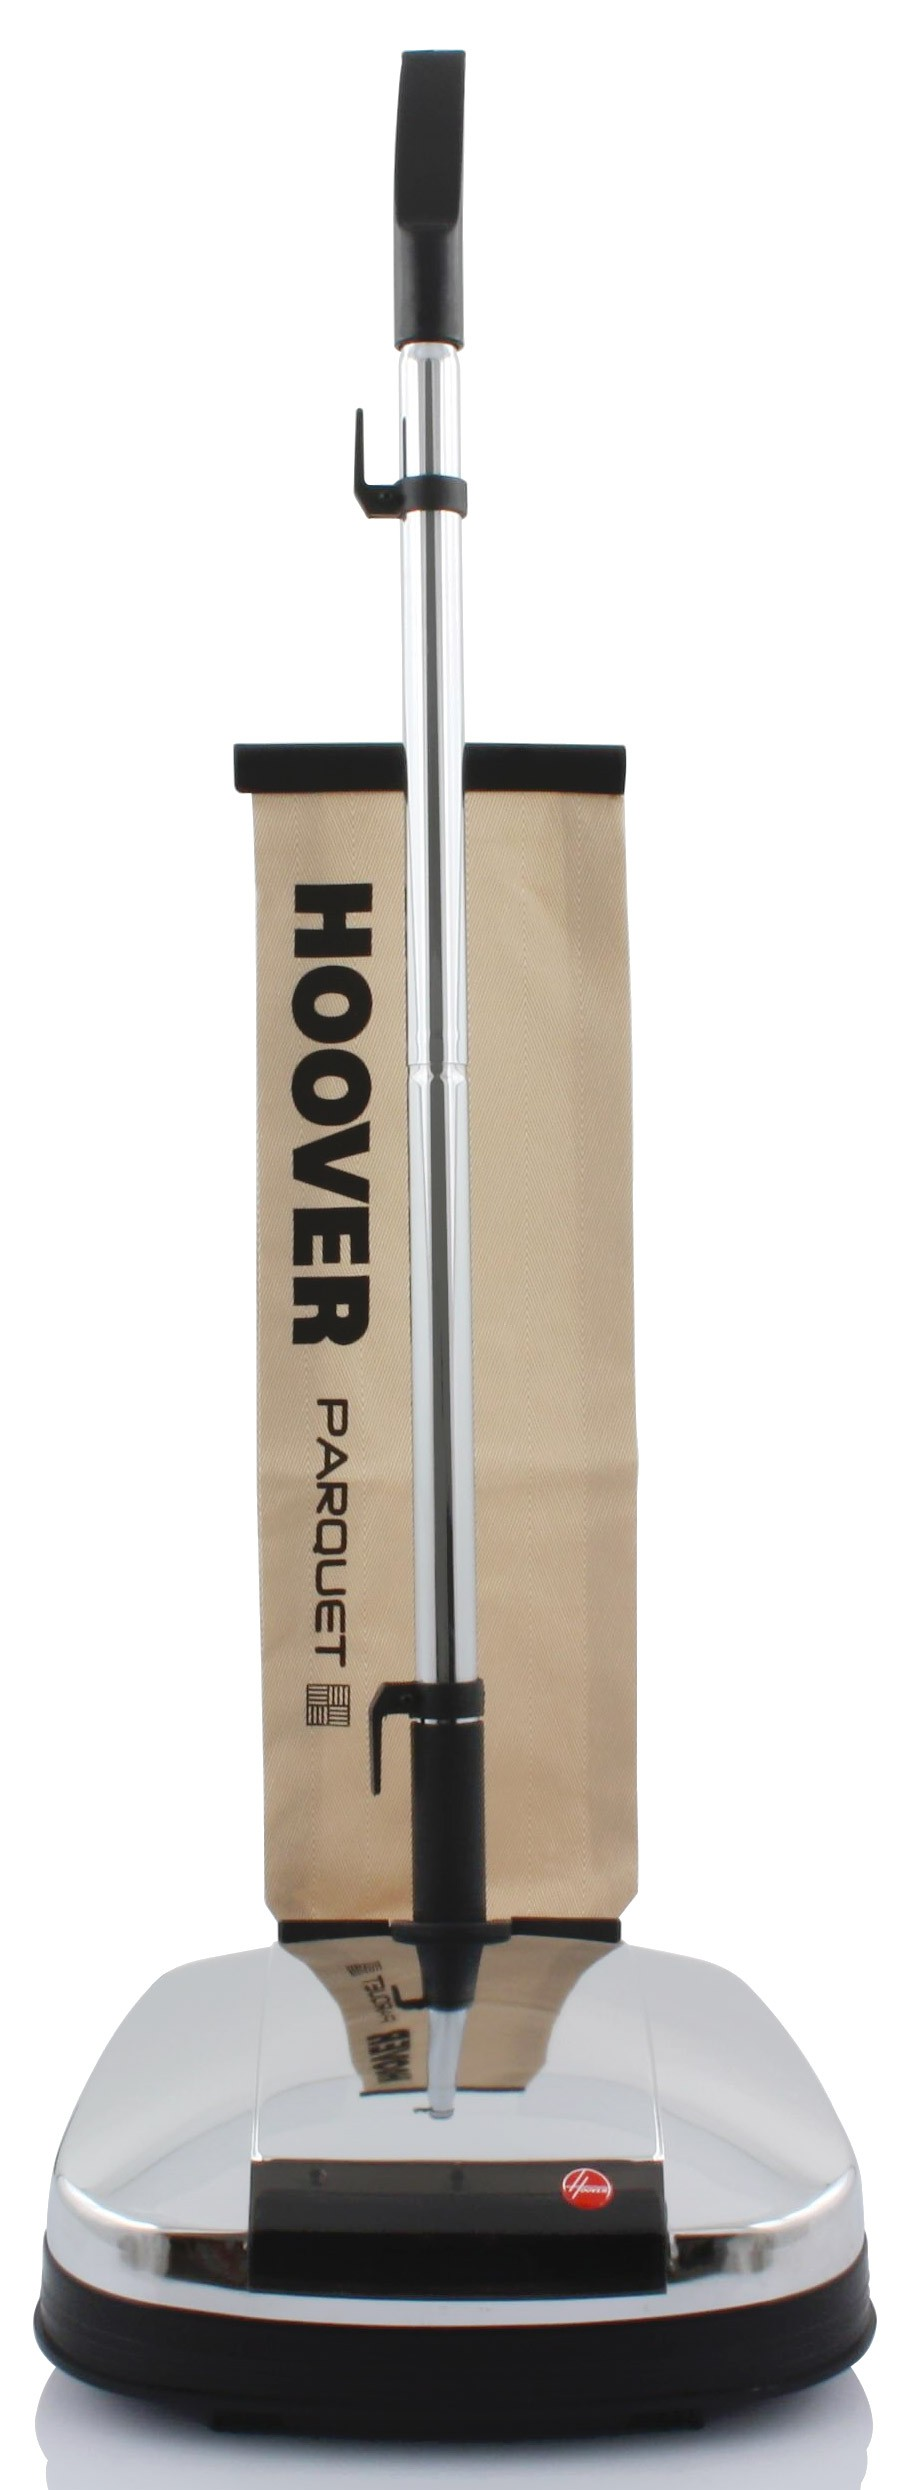 HOOVER - F 38 PQ